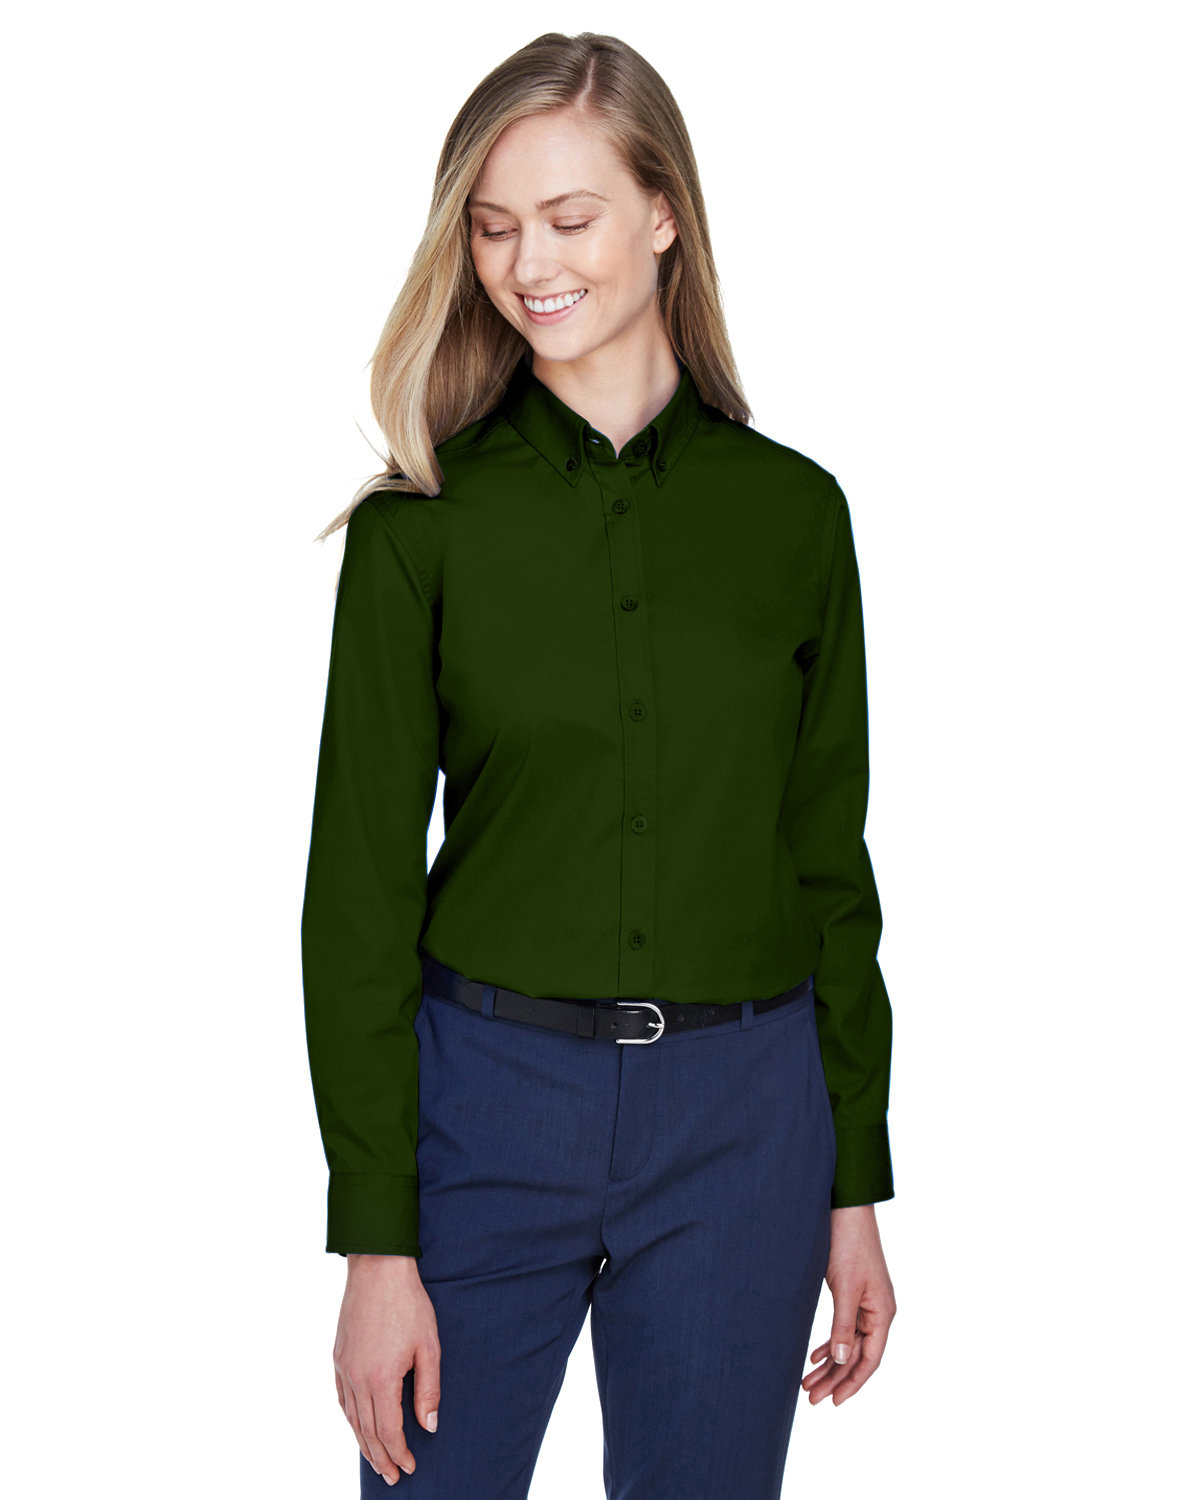 Core 365 Ladies' Operate Long-Sleeve Twill Shirt FOREST